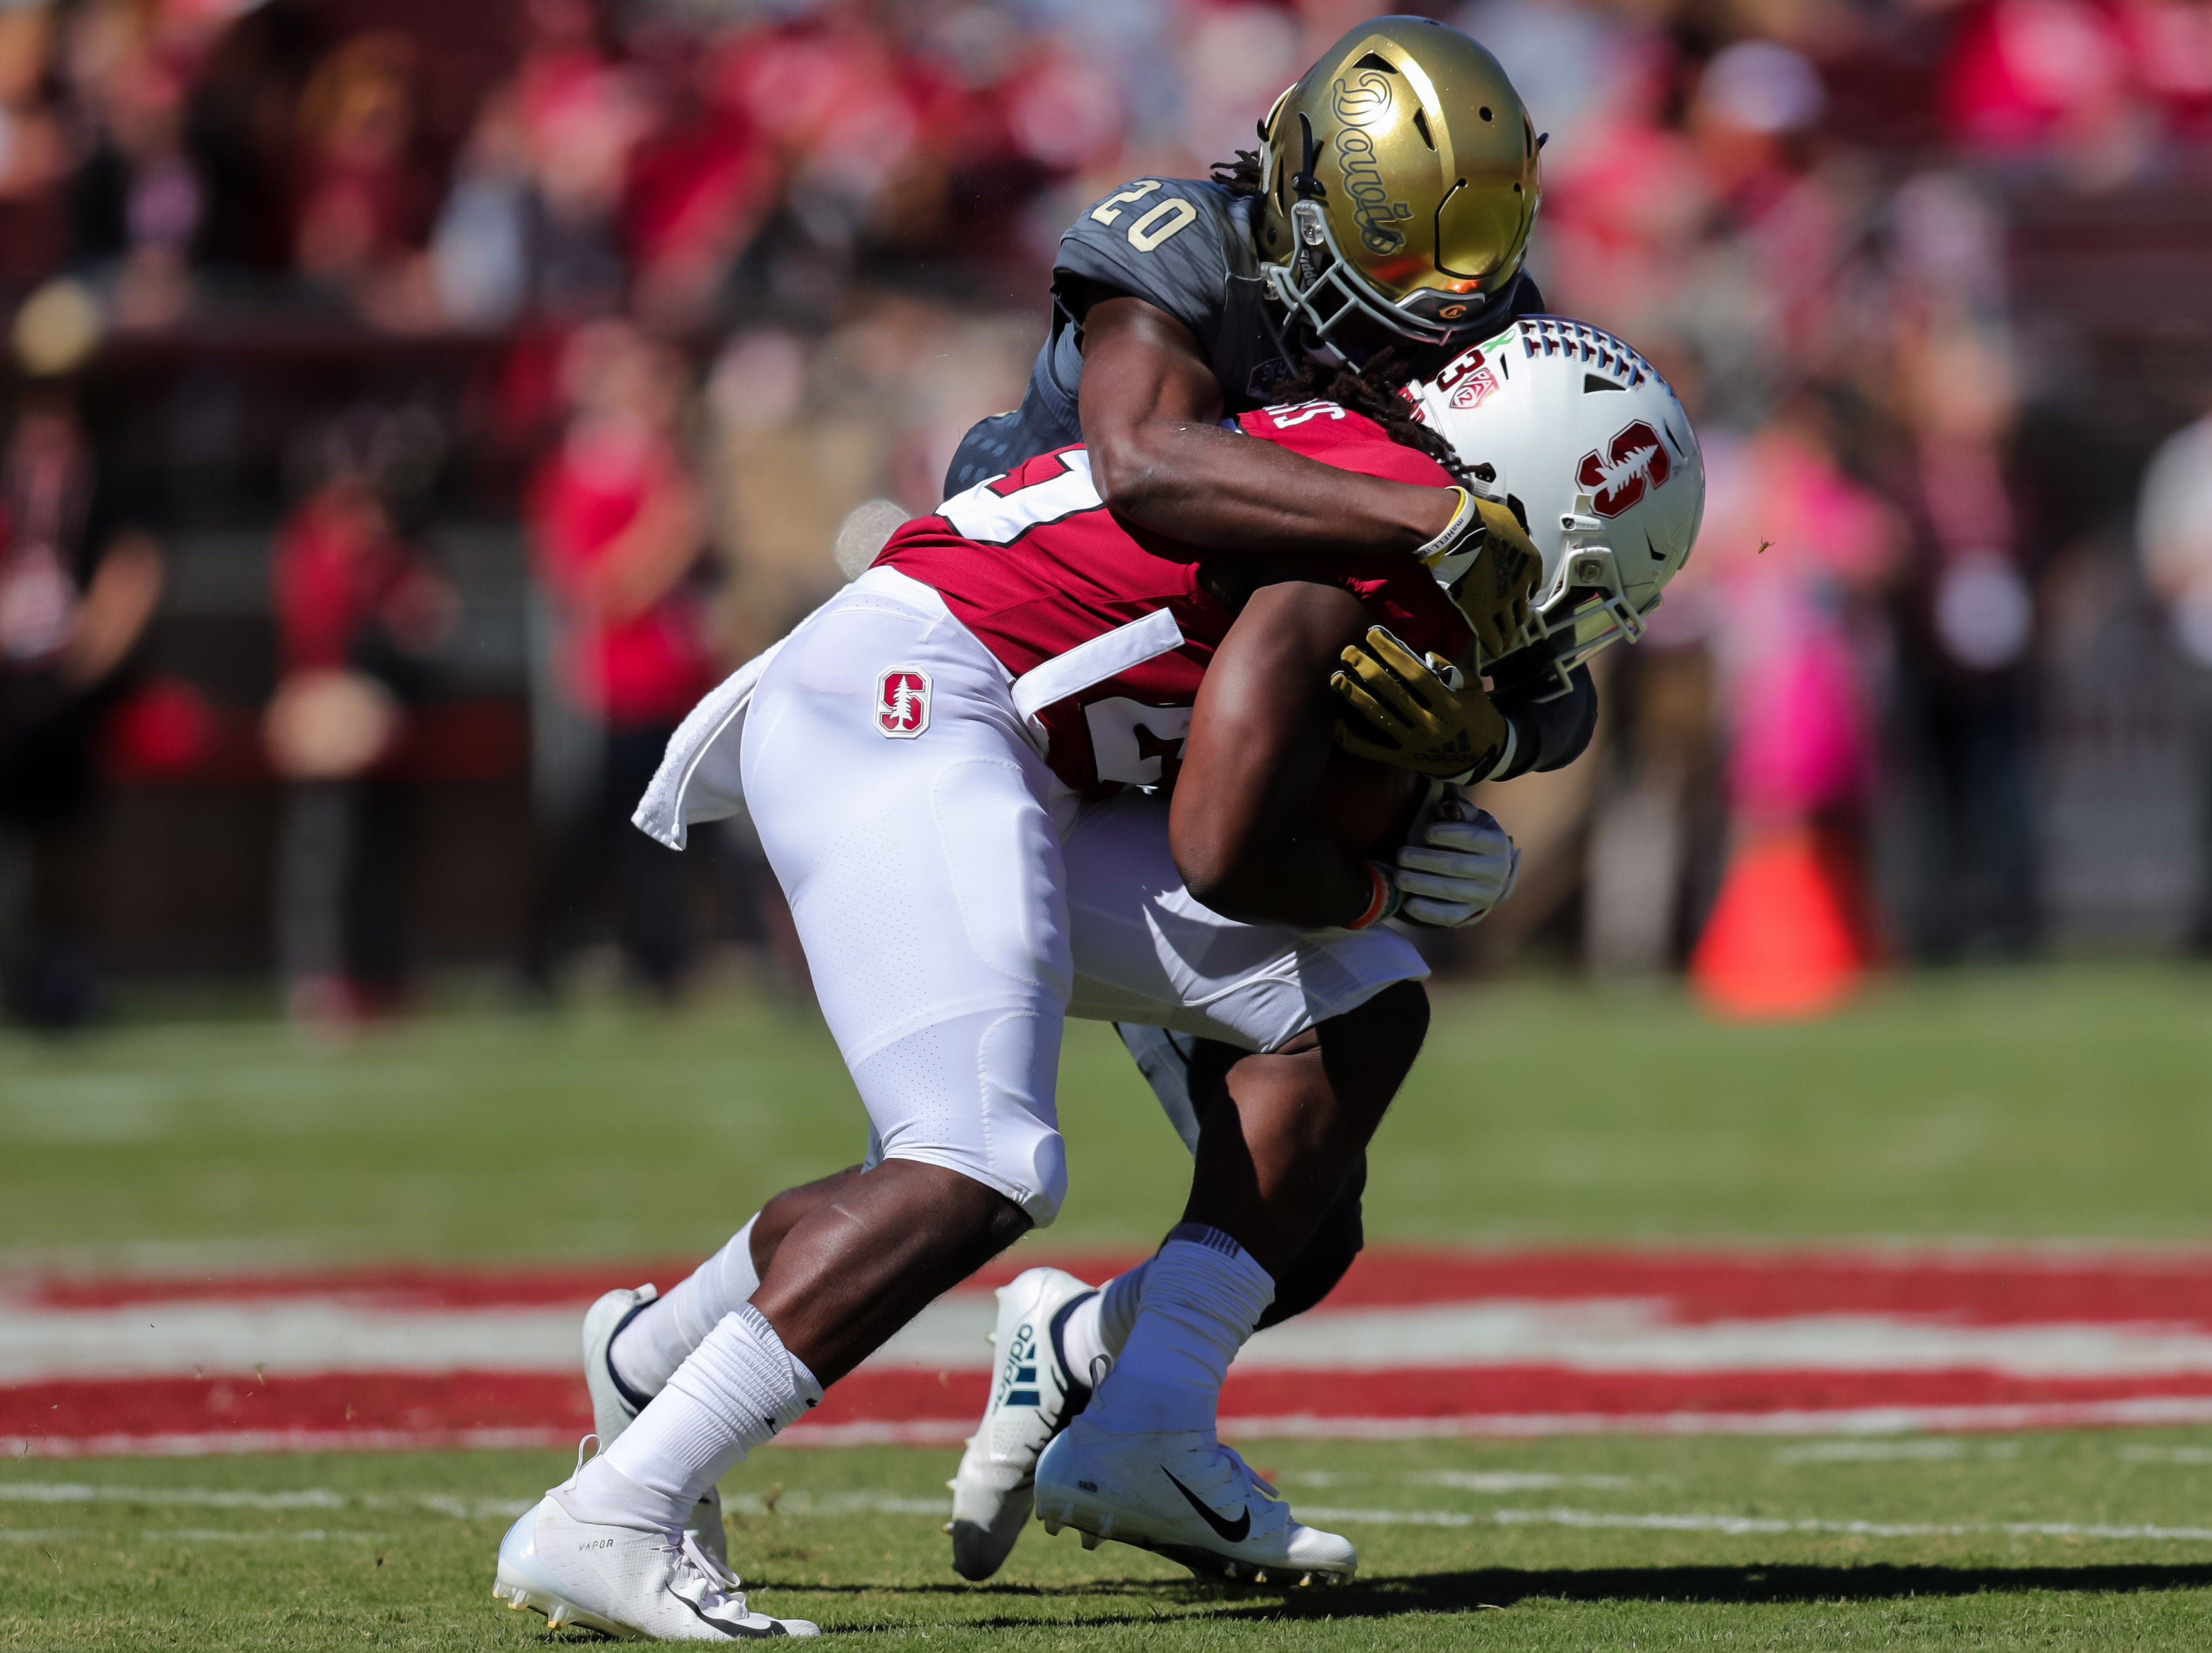 Sep 15, 2018; Stanford, CA, USA; Stanford Cardinal running back Trevor Speights (23) is tackled by UC Davis Aggies defensive back Vincent White (20) during the first quarter at Stanford Stadium. Mandatory Credit: Sergio Estrada-USA TODAY Sports ORG XMIT: USATSI-382190 ORIG FILE ID:  20180915_gav_ea1_143.jpg